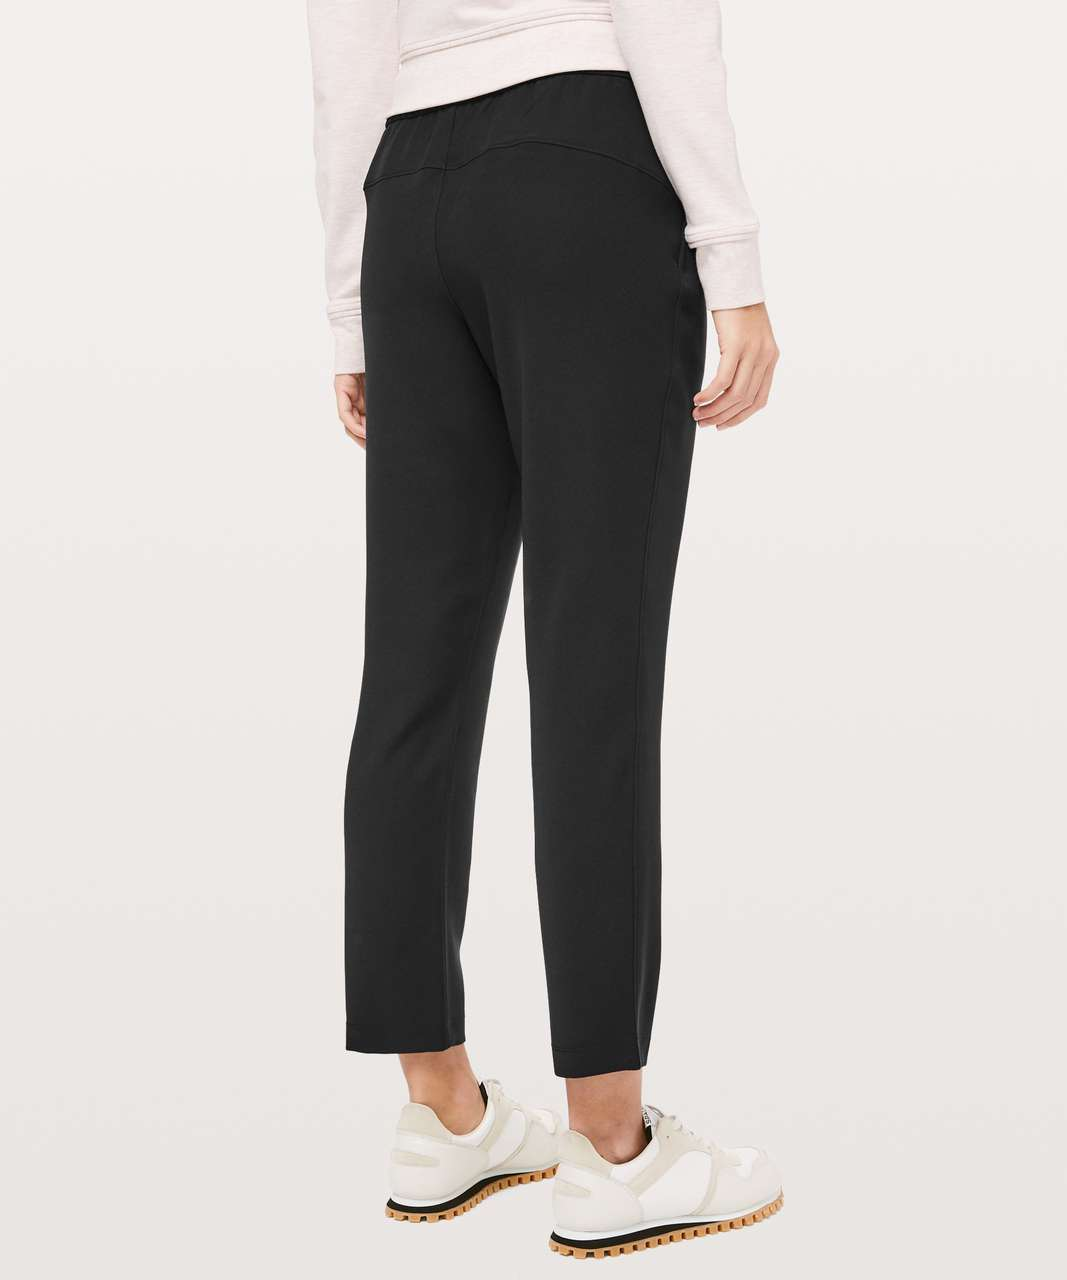 "Lululemon On The Fly Pant *Woven 28"" - Black"